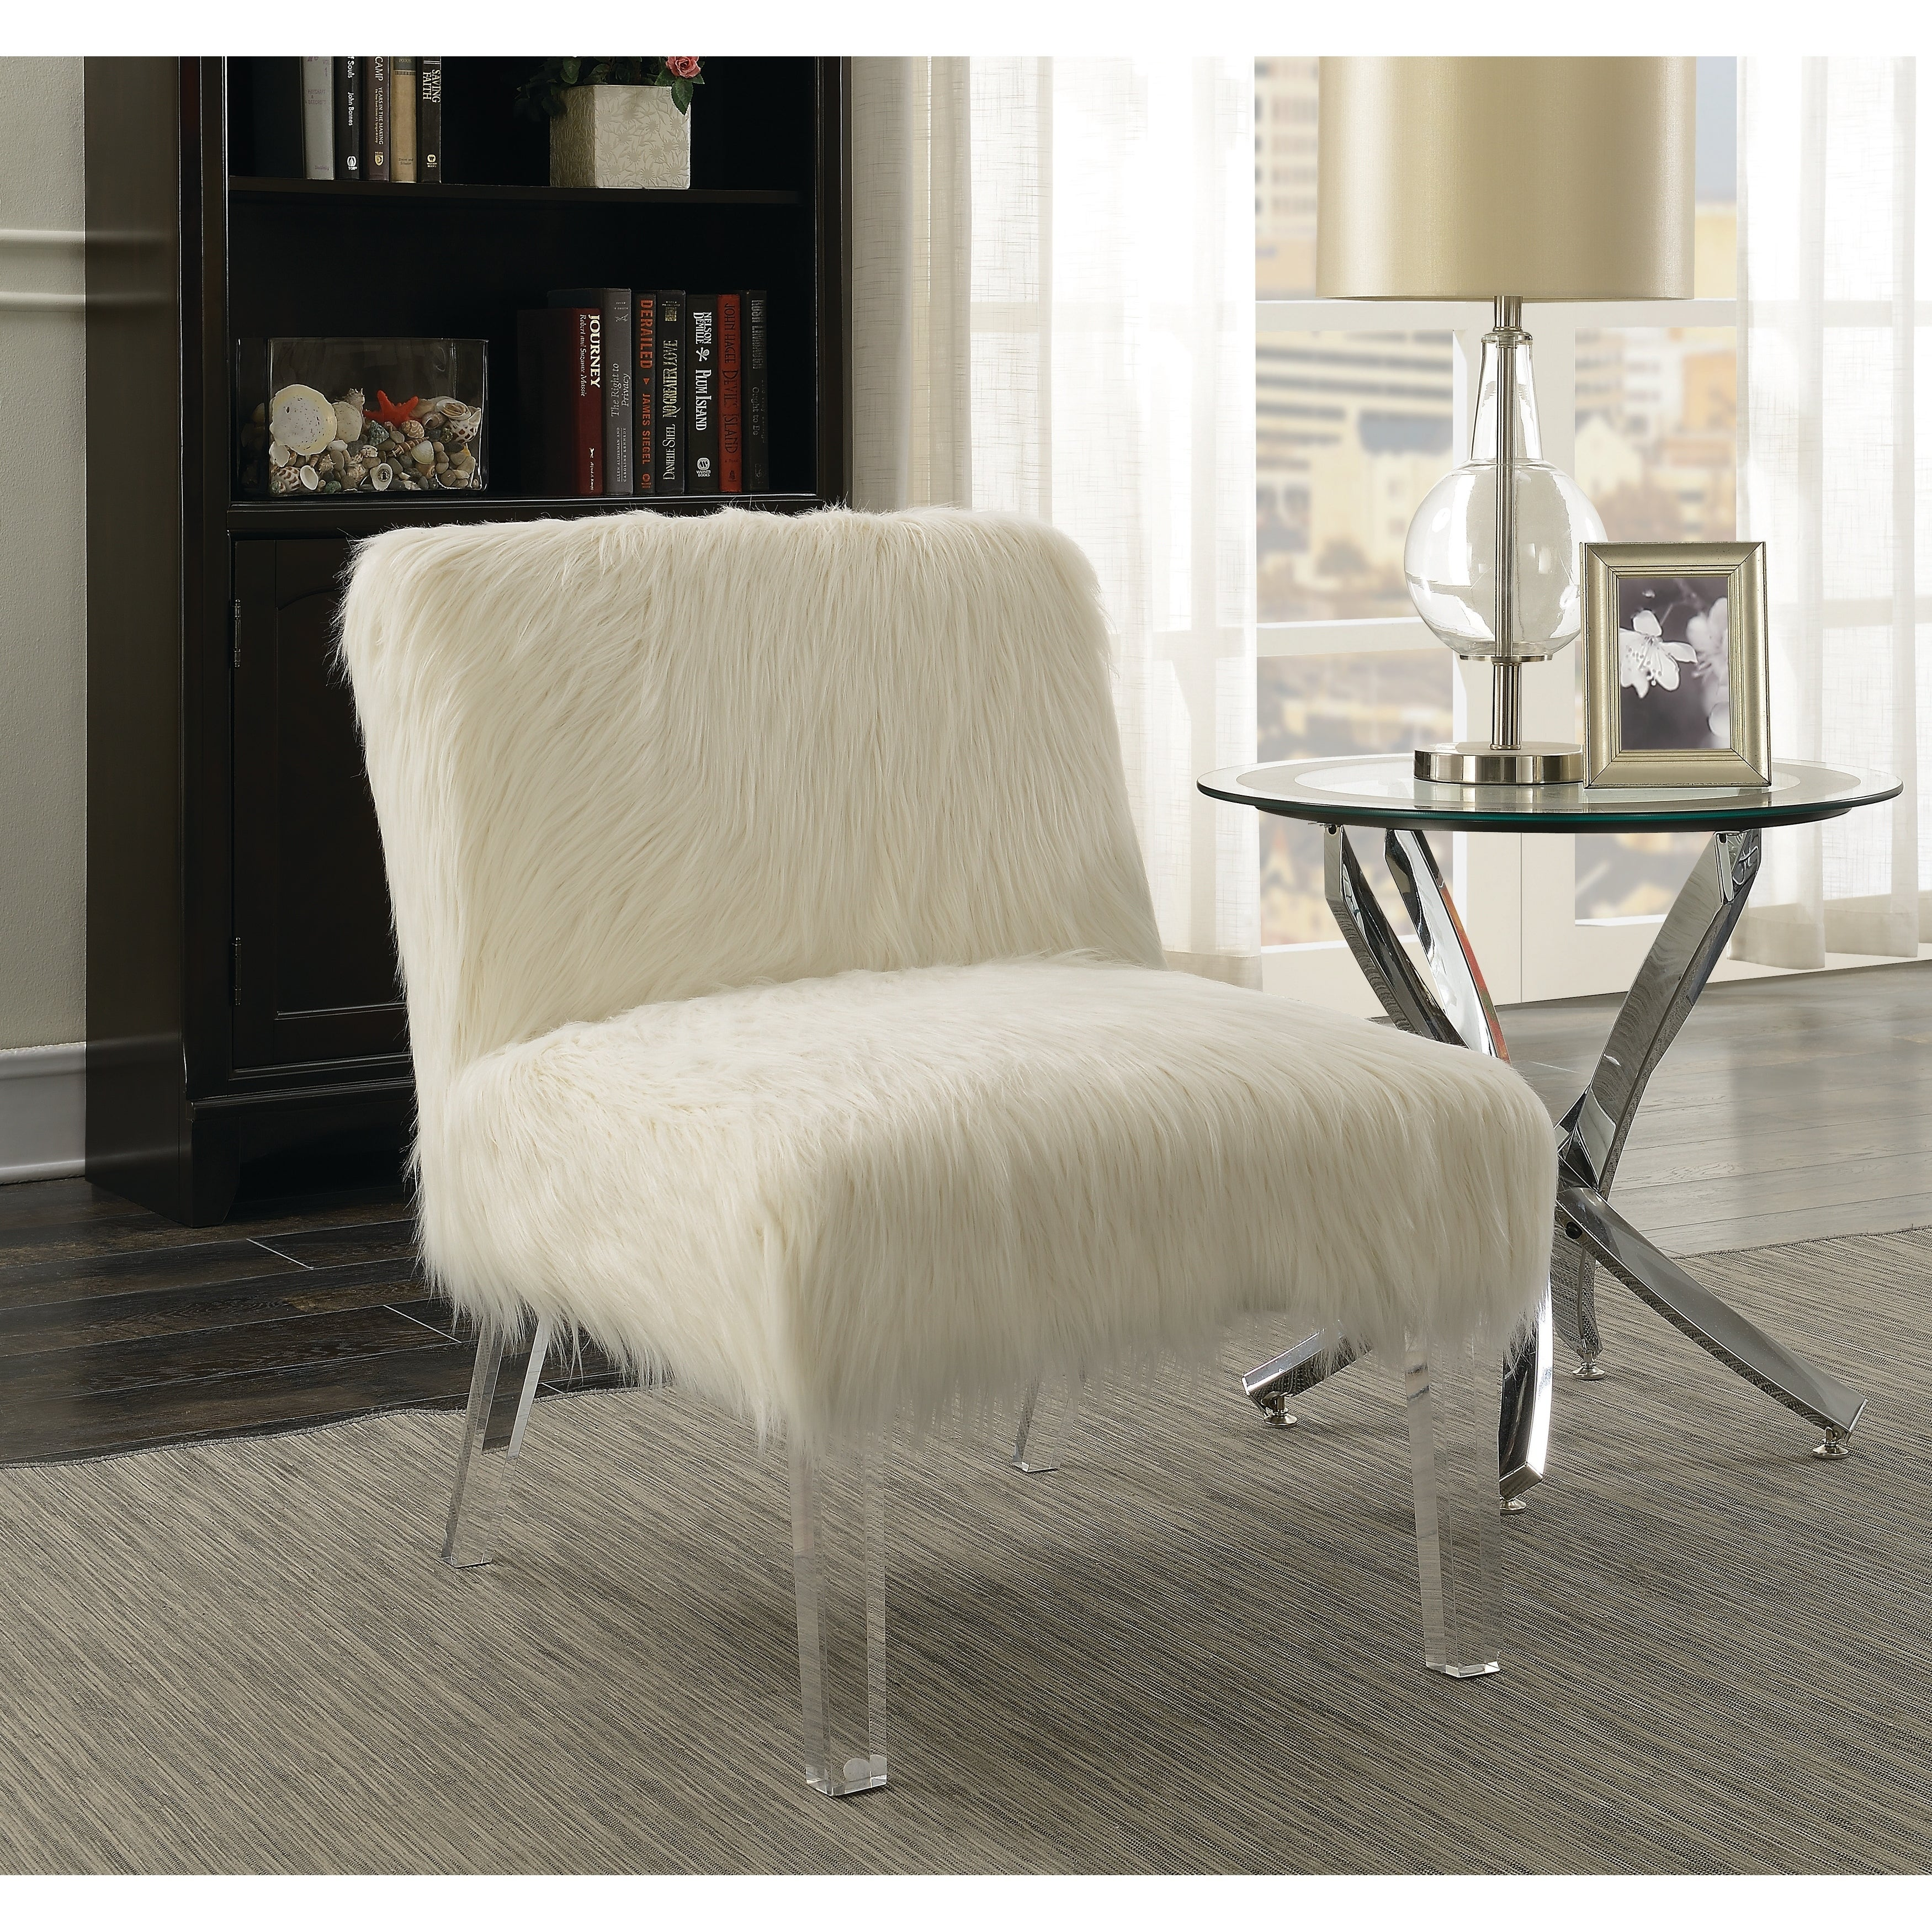 Image of: Shop Black Friday Deals On Contemporary White And Clear Accent Chair 23 50 X 31 X 31 On Sale Overstock 22047429